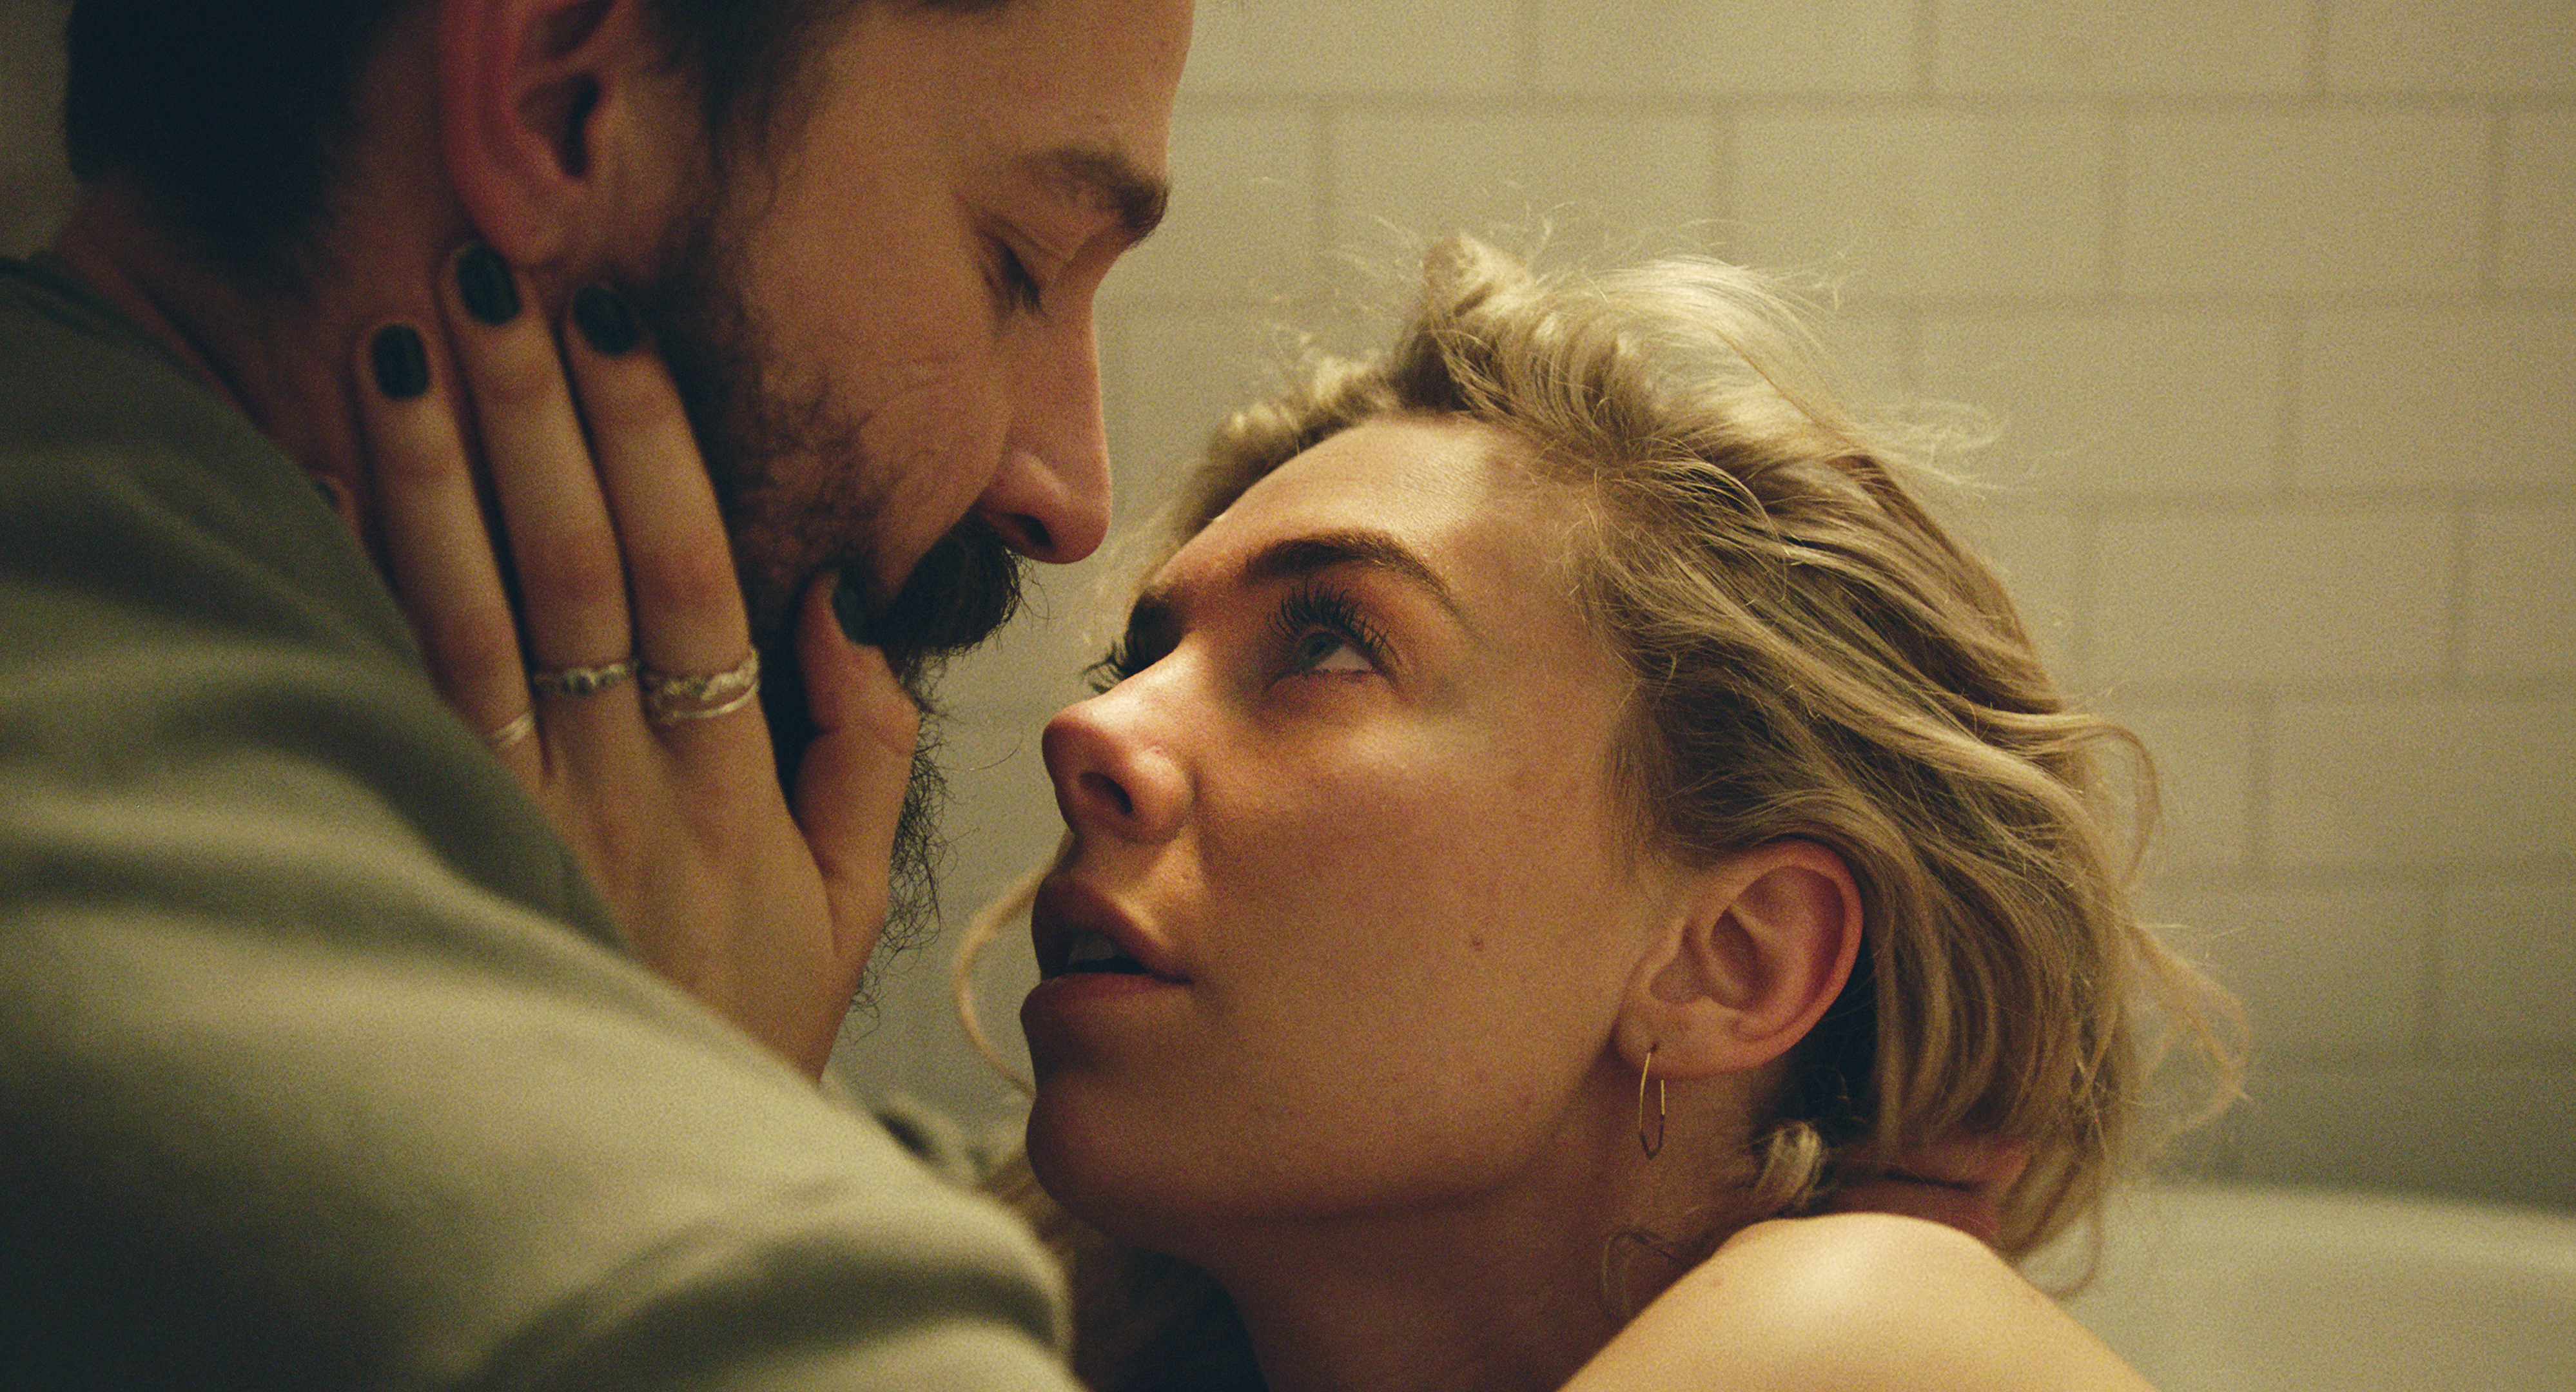 a close-up shot of Vanessa Kirby, a white woman, holding Shia LeBeouf, a bearded white man's face in her hands in Pieces of a Woman